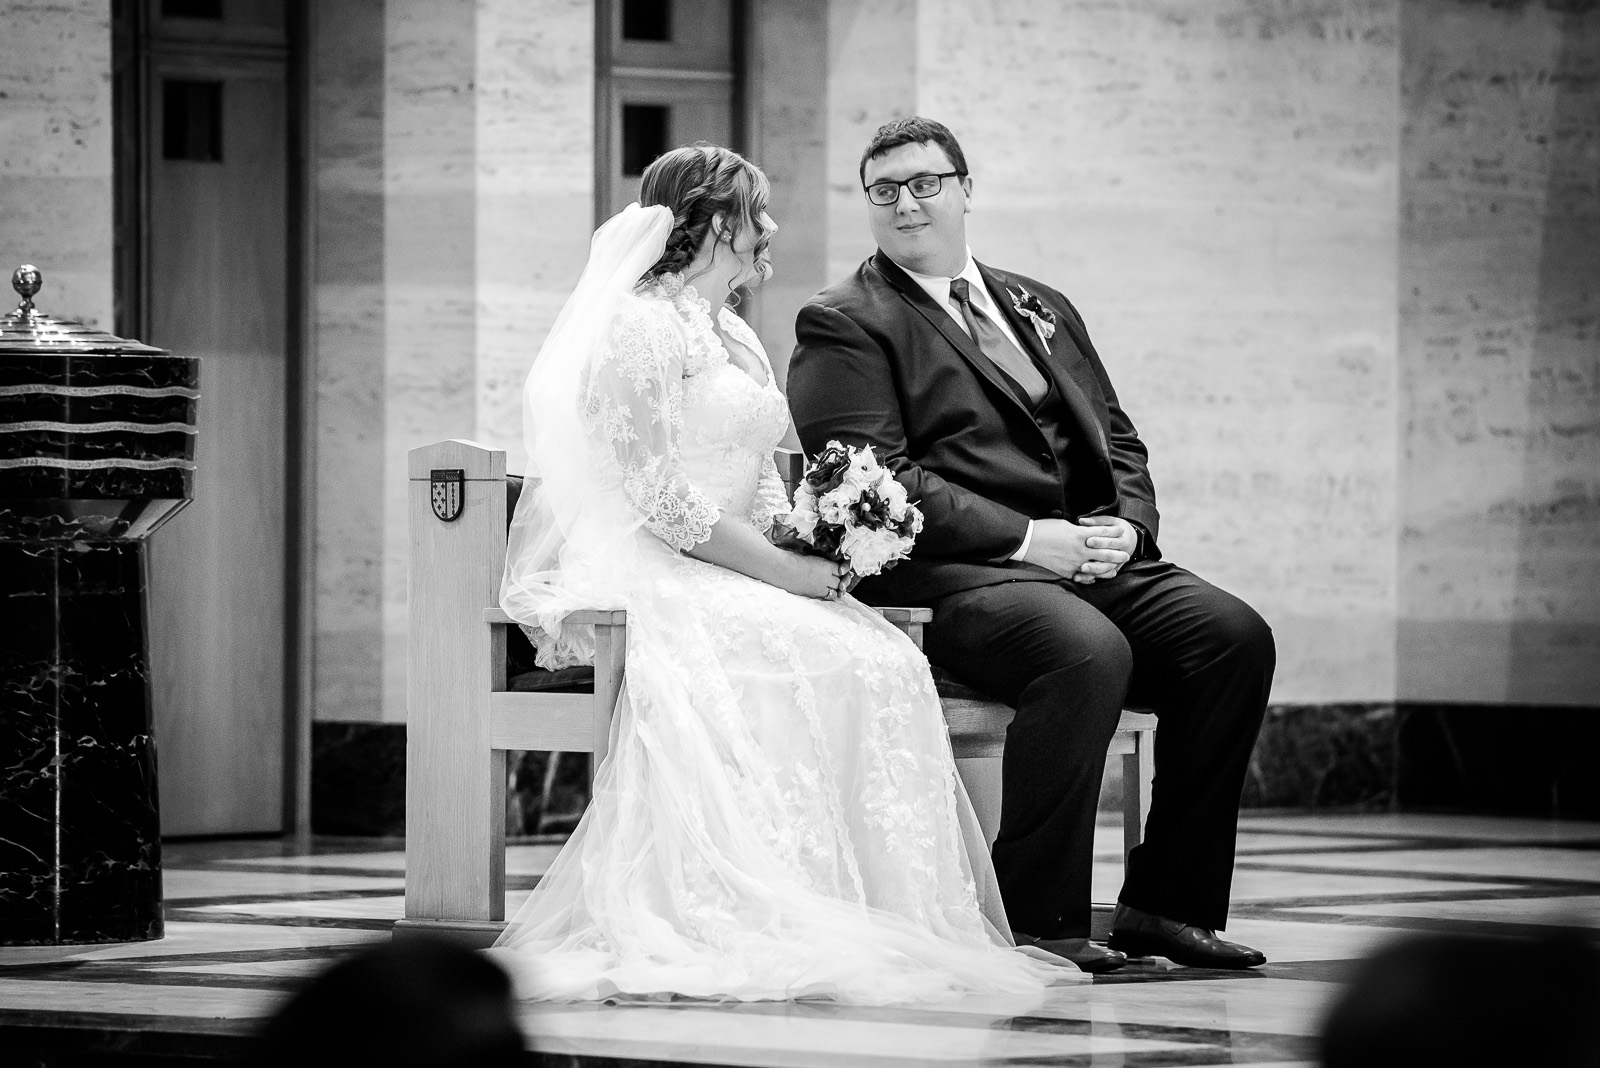 Eric_and_Christy_Photography_Blog_Wedding_Karen_Nick-7